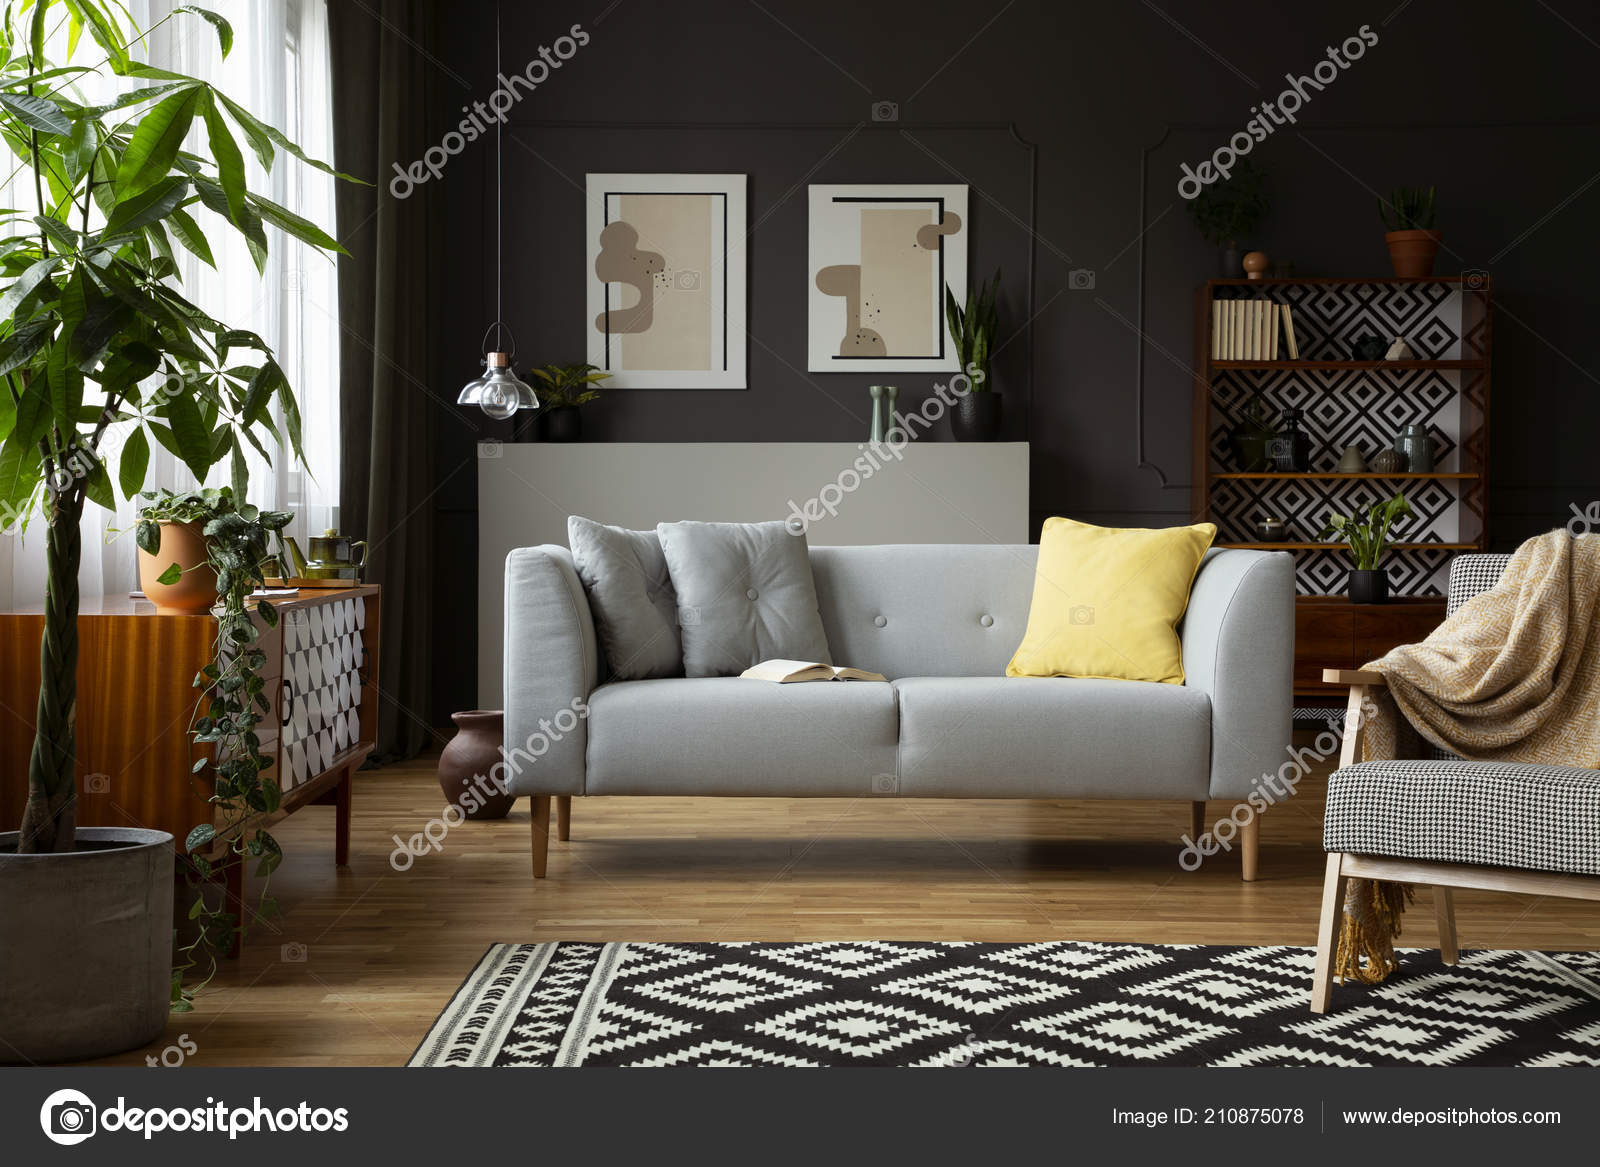 Armchair Blanket Carpet Living Room Interior Grey Couch Posters Real —  Stock Photo cb298f03f